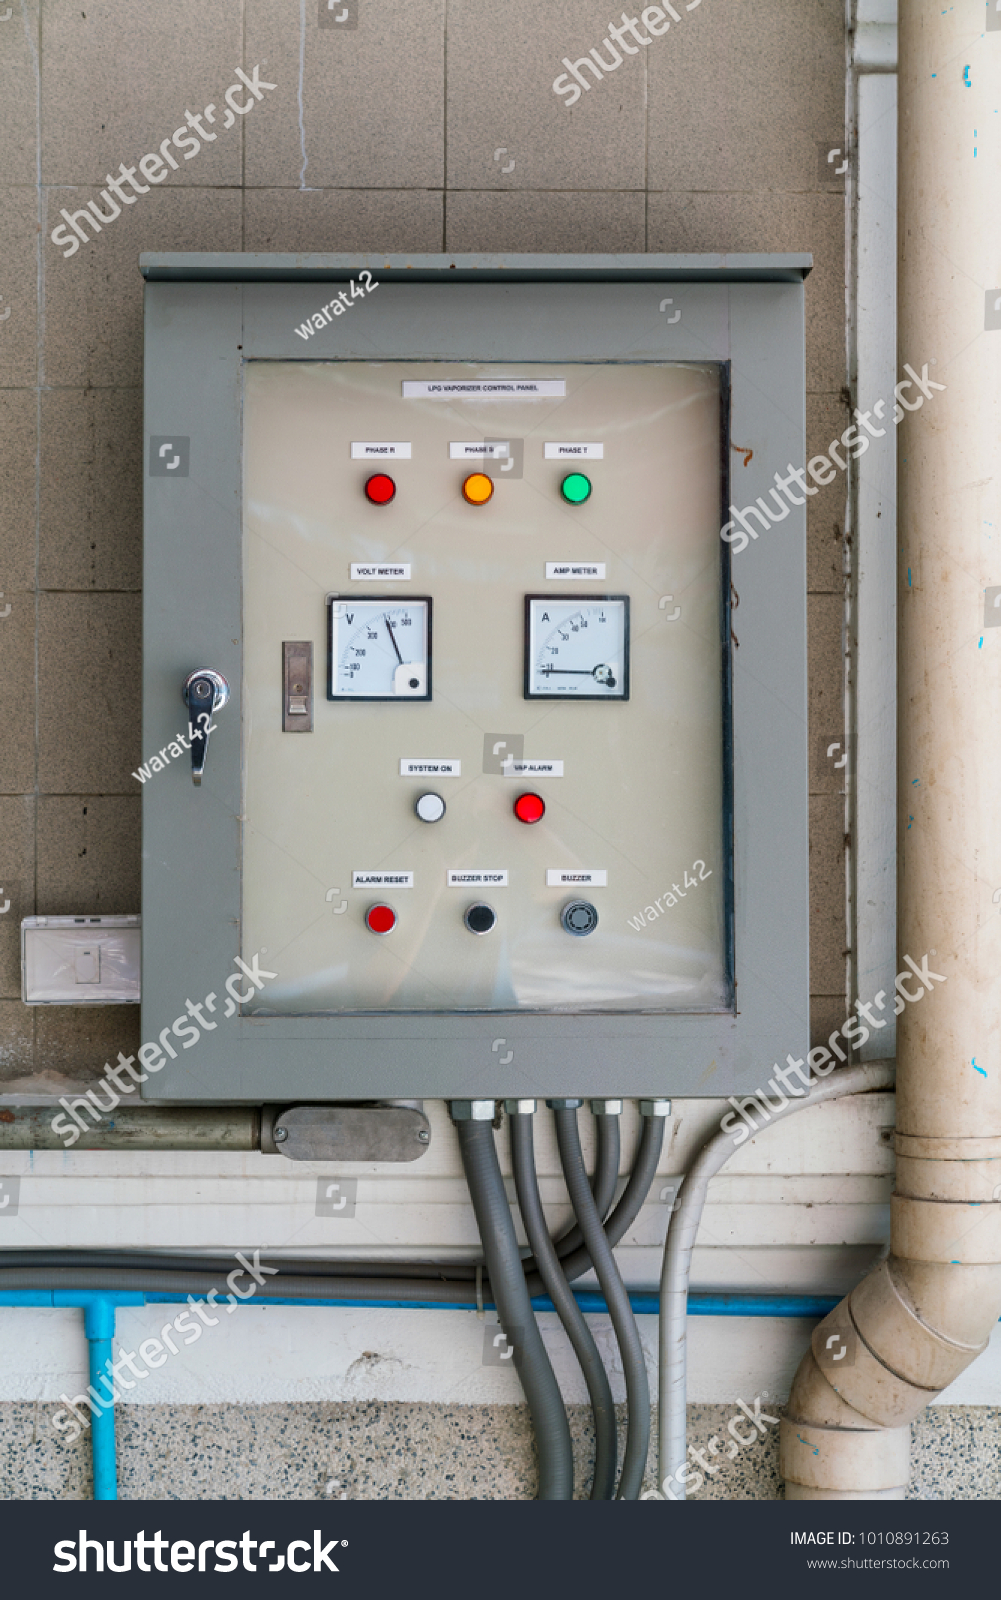 Funky Switchboard Connection Sketch - Electrical and Wiring Diagram ...